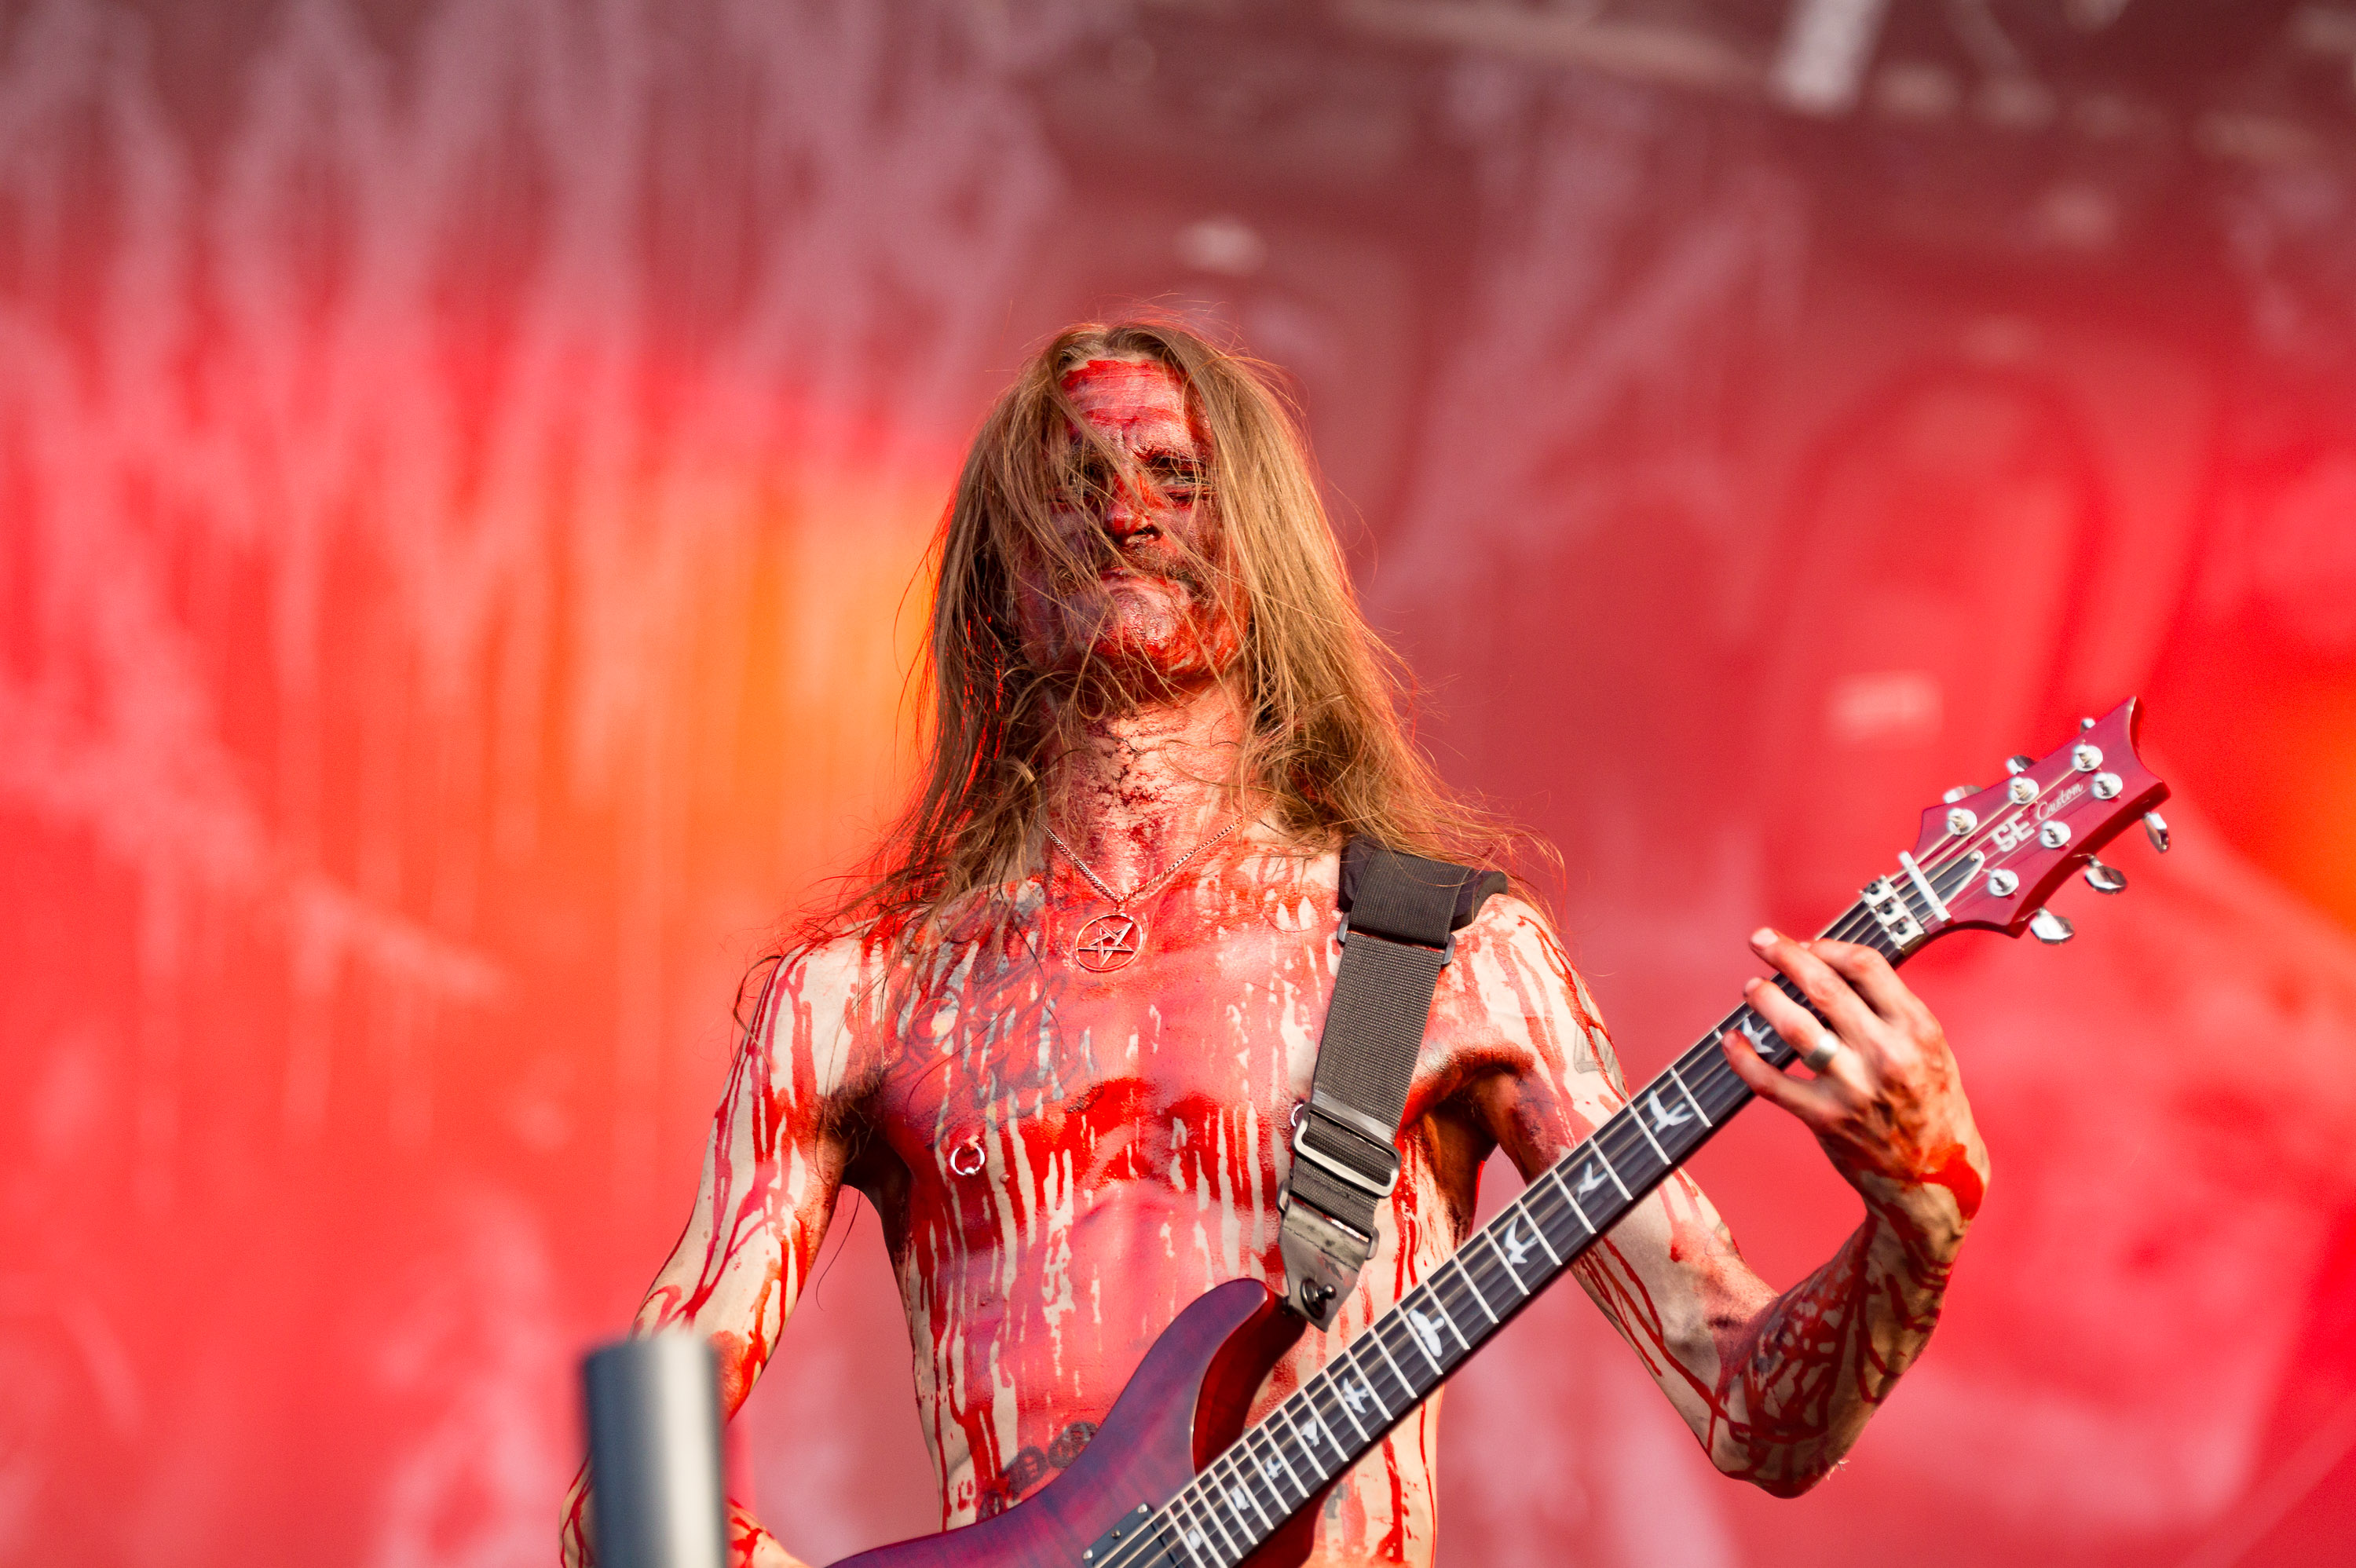 W.O.A 2015 Wacken Open Air Festival am 01.08.15 mit  Bloodbath